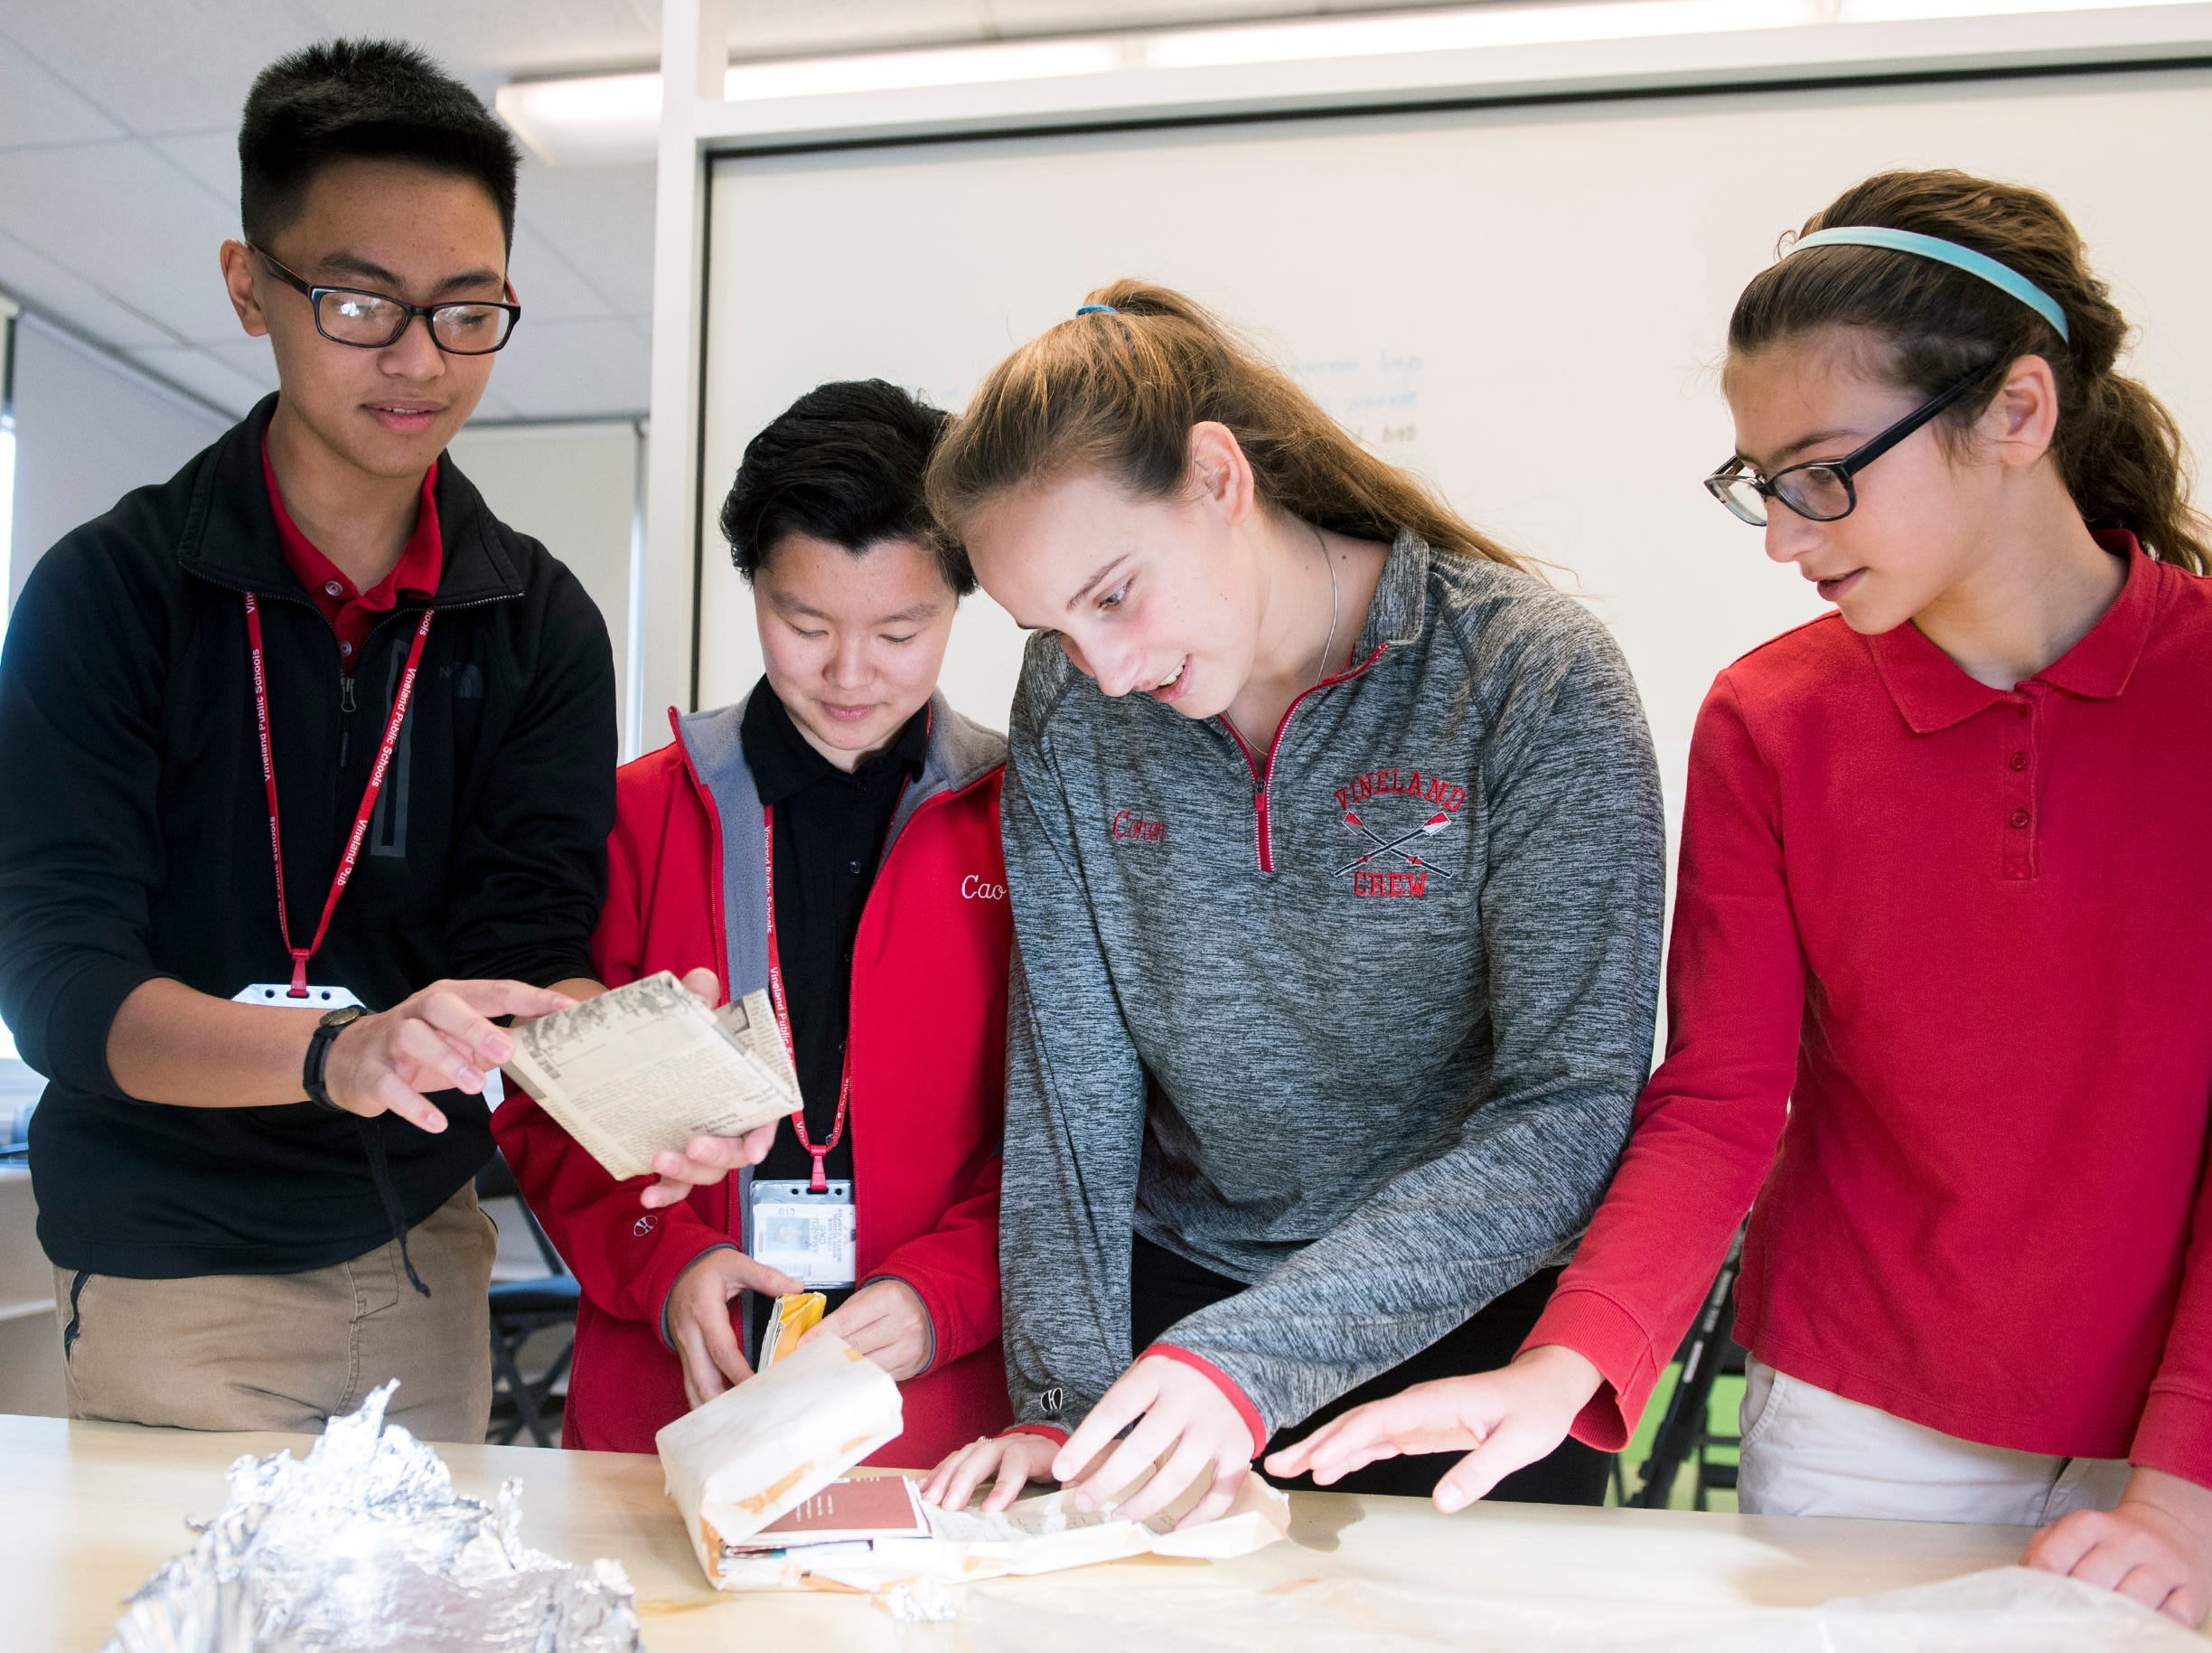 Students Rodrick-Josh Zapata, 15, Amanda Cao, 16, Faviana Cohen, 16, and Sarah Hullihen open the contents of a time capsule dating back to 1957 Monday, Dec. 3, 2018 at Johnstone Elementary School in Vineland, N.J.